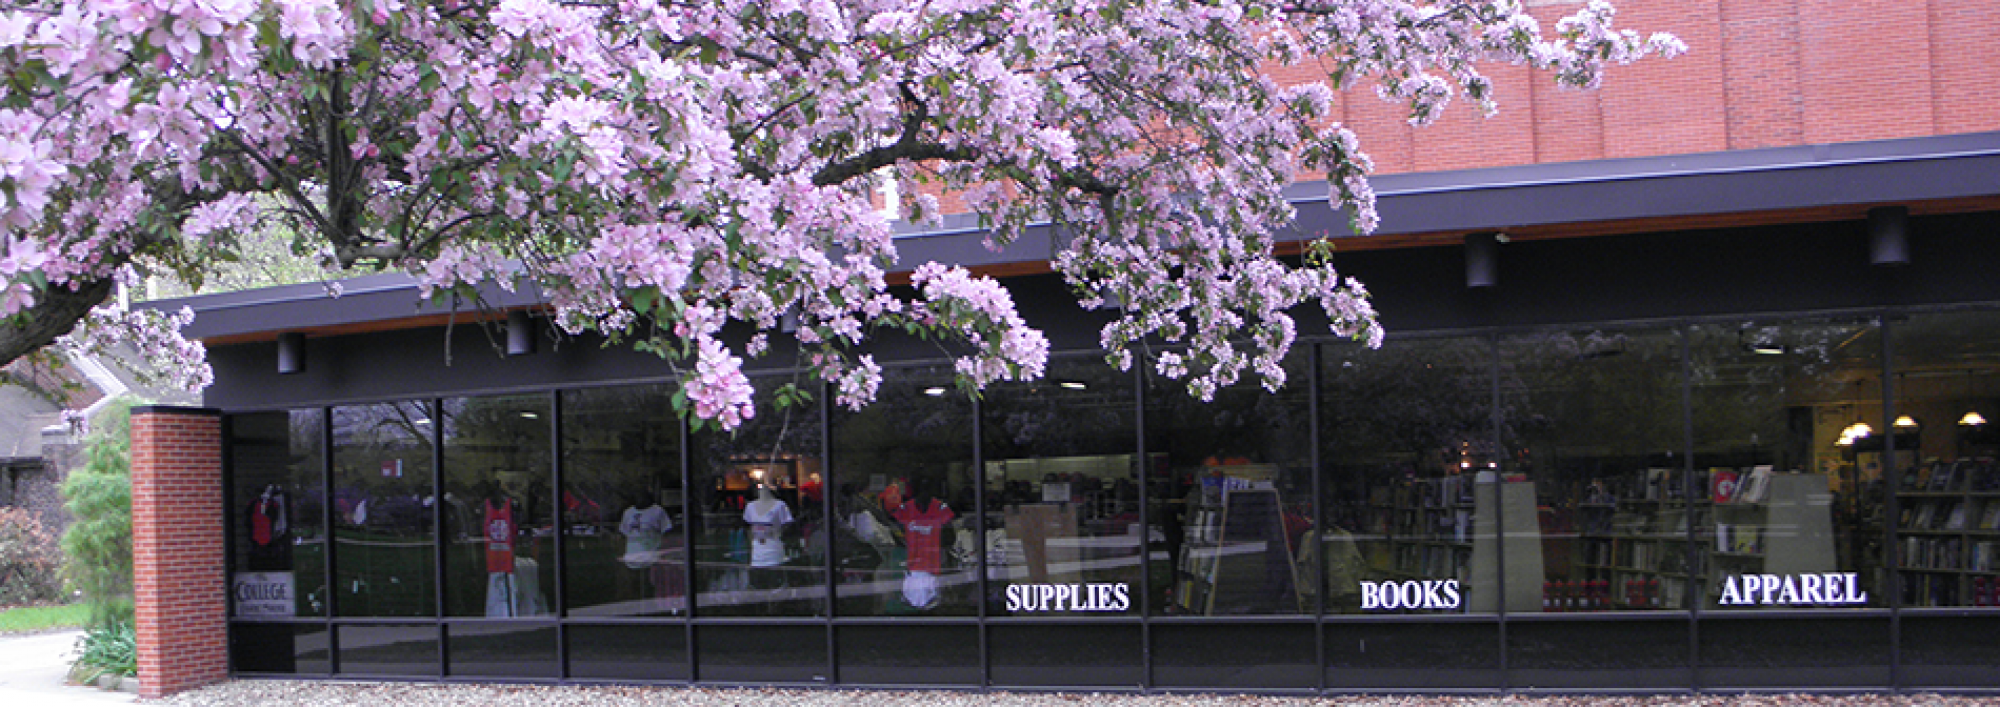 Exterior of the bookstore with a tree in bloom